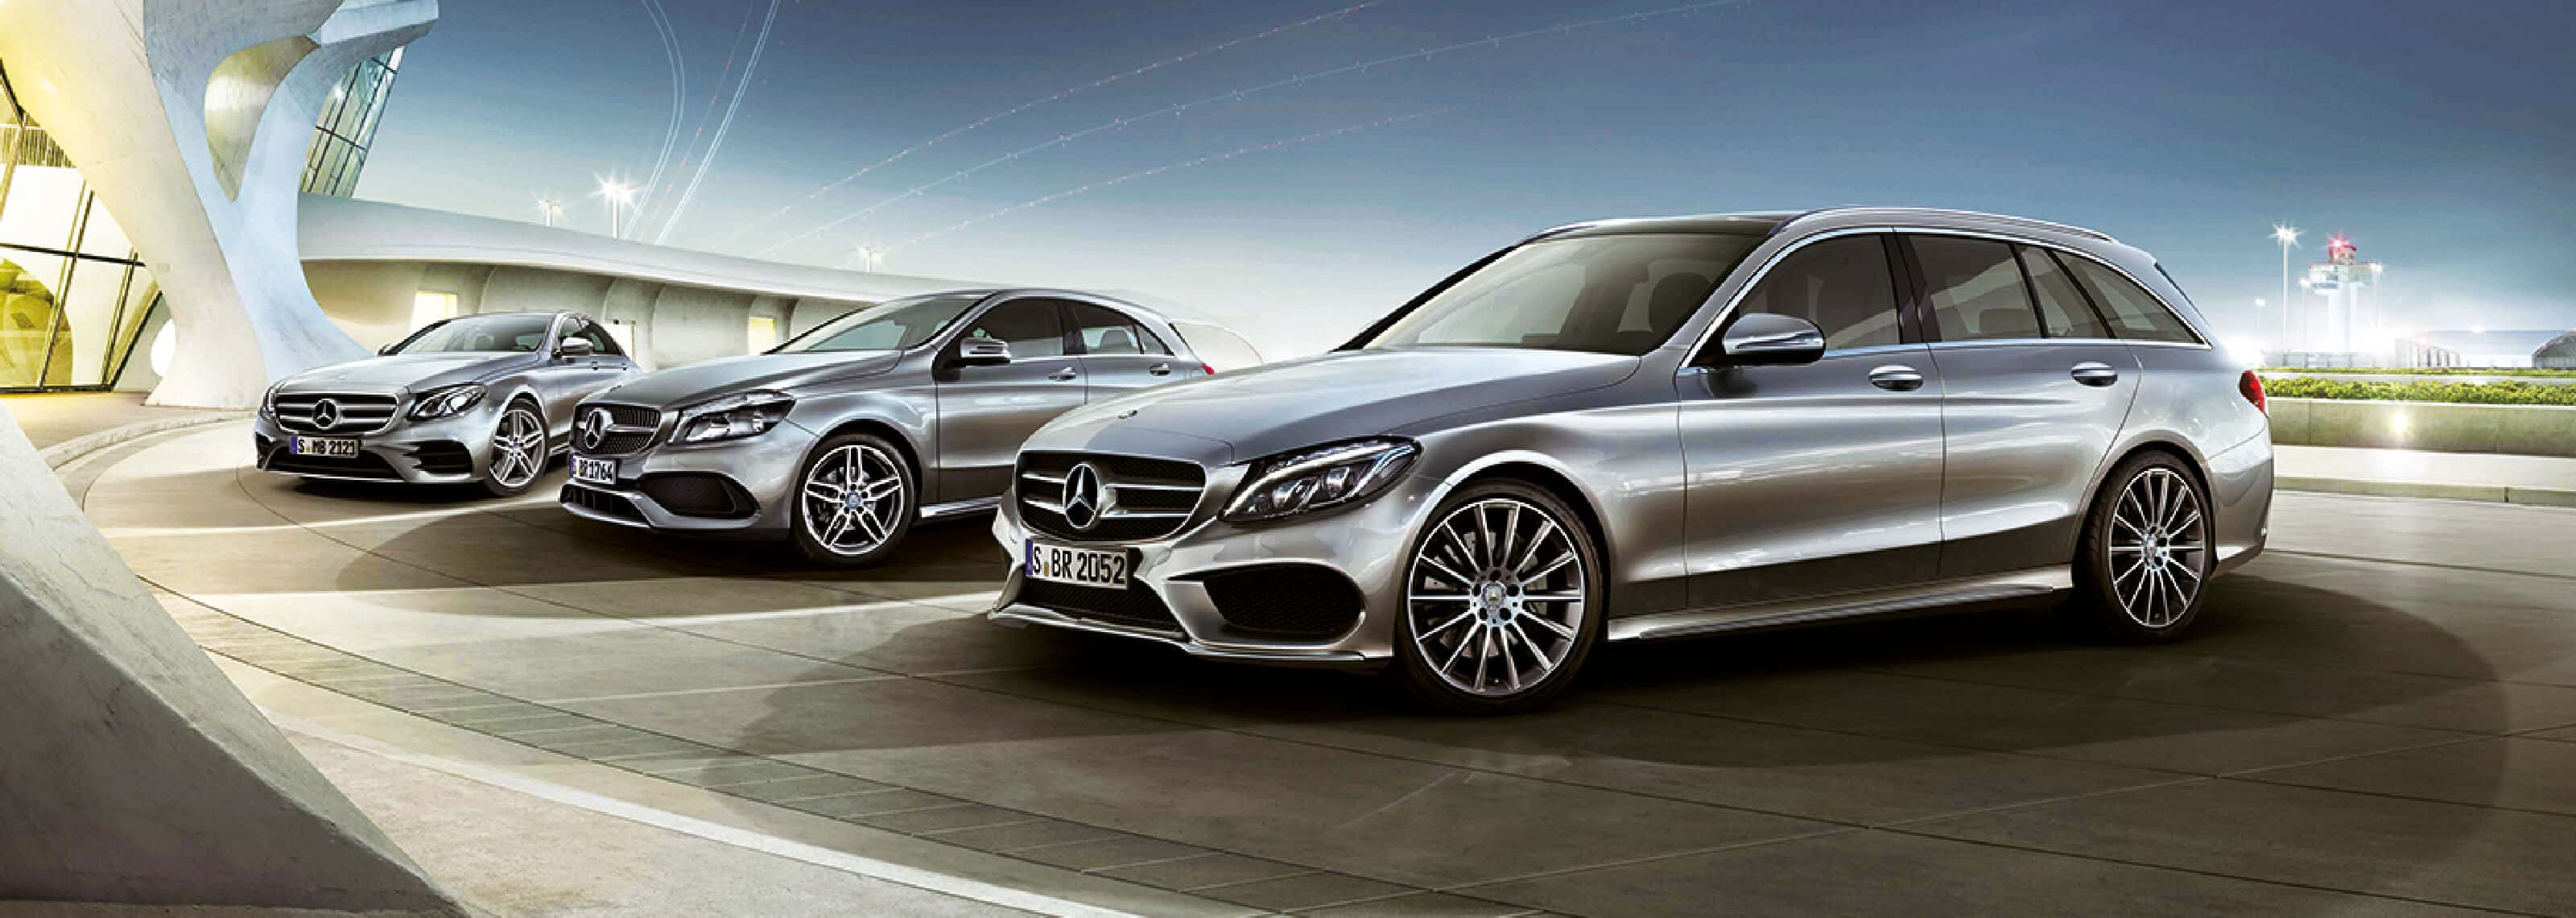 Nearly New Offers | Mercedes-Benz | Vertu Mercedes-Benz